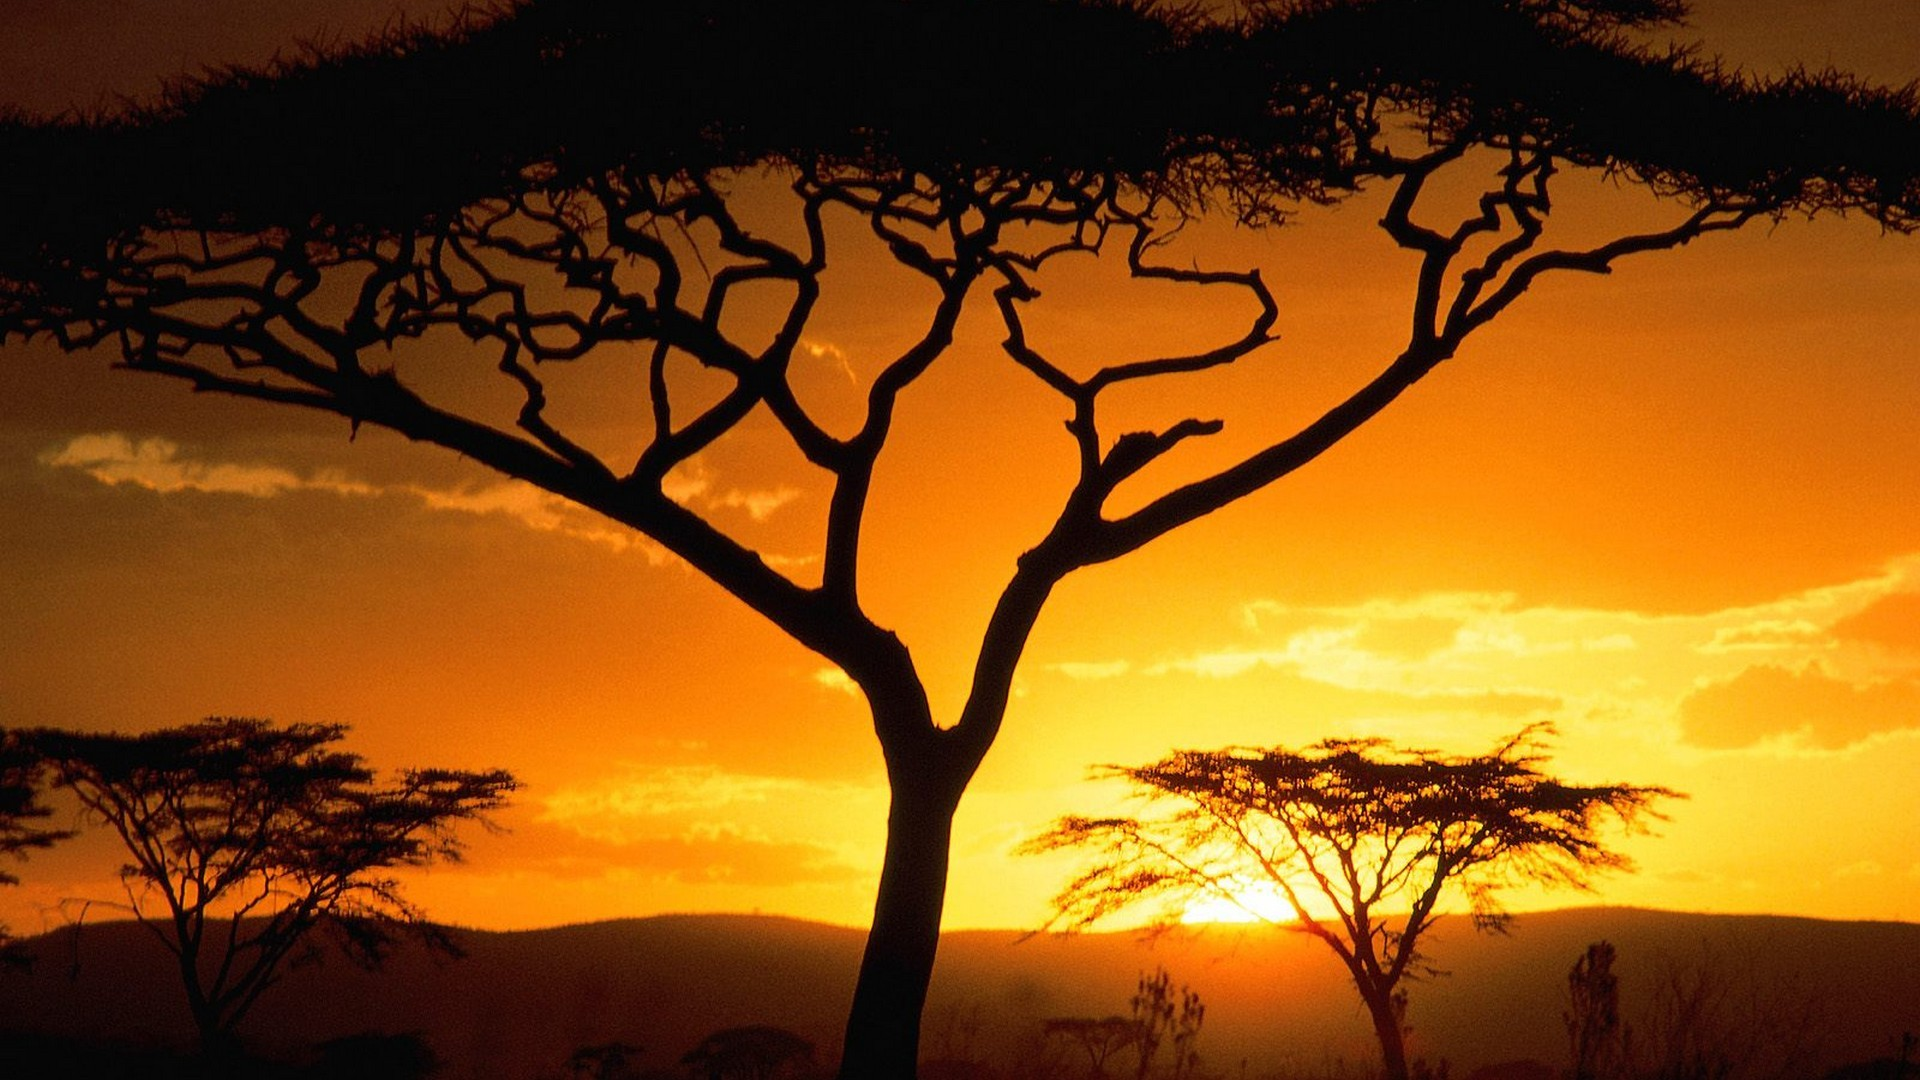 south african sunset landscape background hd